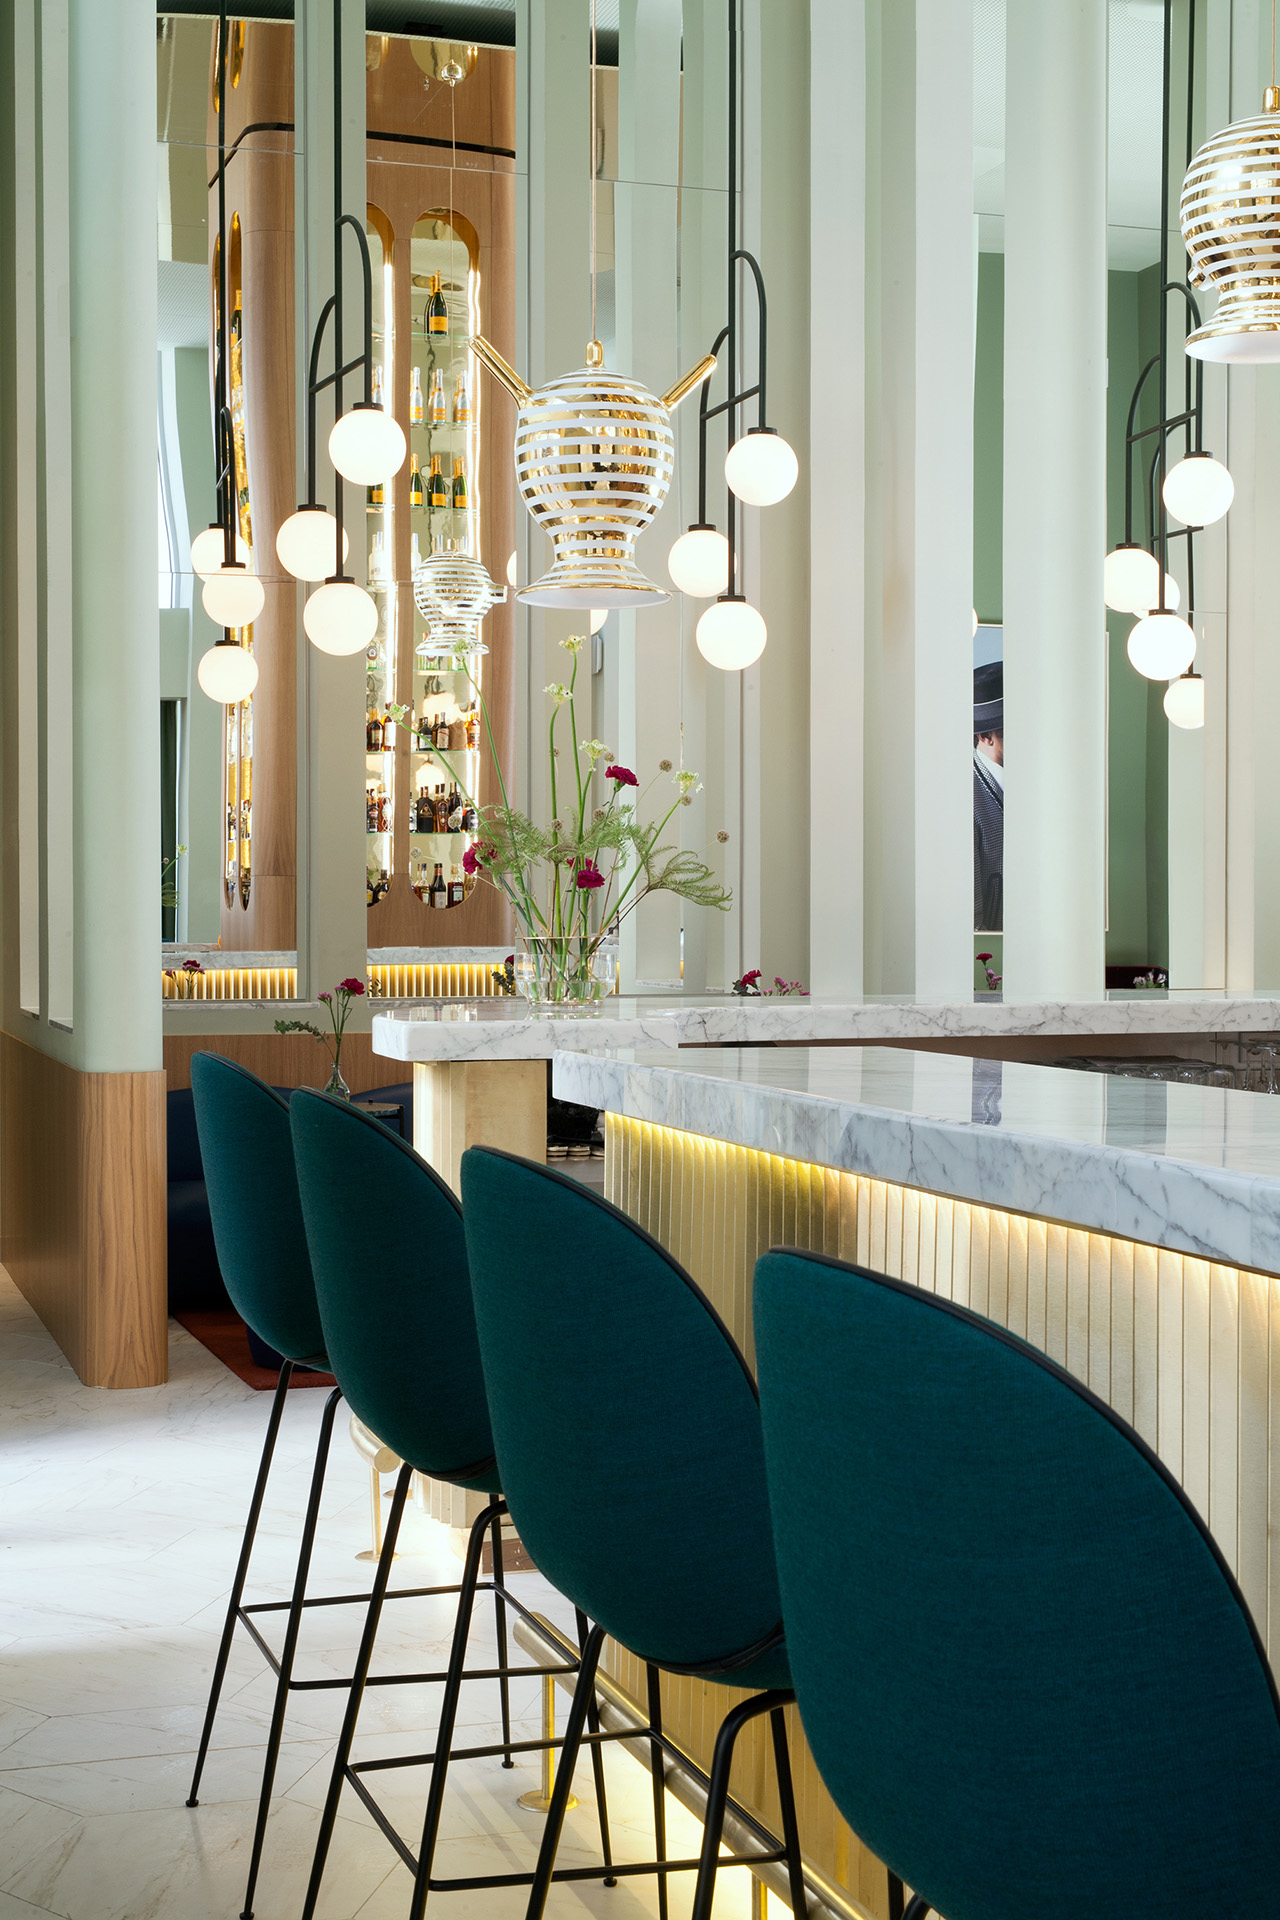 Garra Lobby Bar: Custom made ceramic lamps and structural lamps designed by Jaime Hayon specially for Hotel Barceló Torre de Madrid. Beetle stool by Gubi.